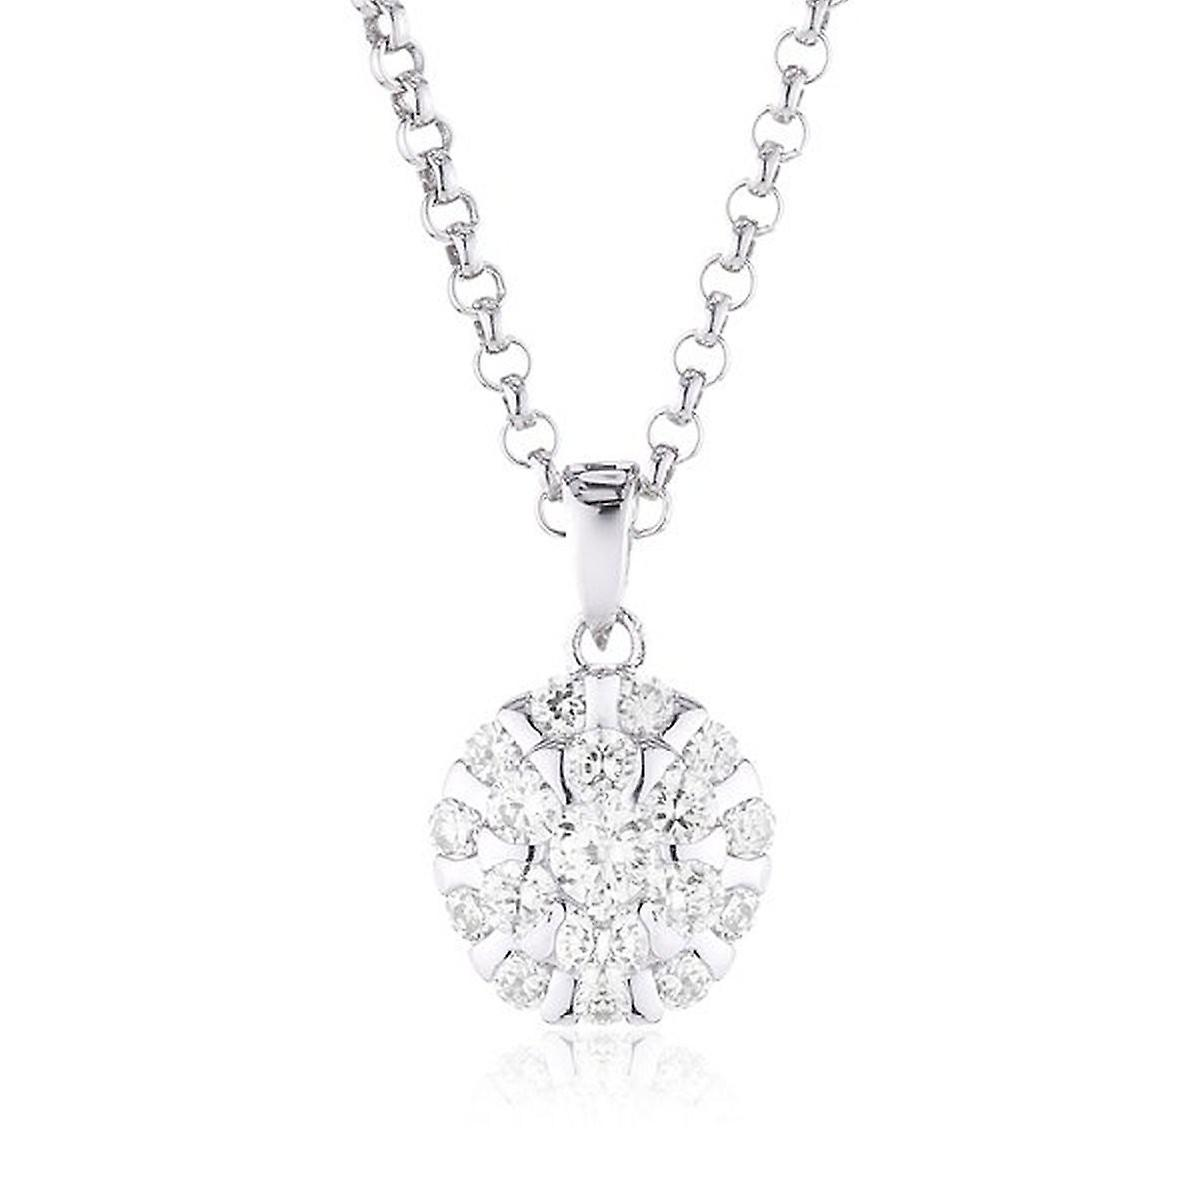 s.Oliver Jewel Damen Kette Collier Silber Zyrkonia SO831/1 - 418669